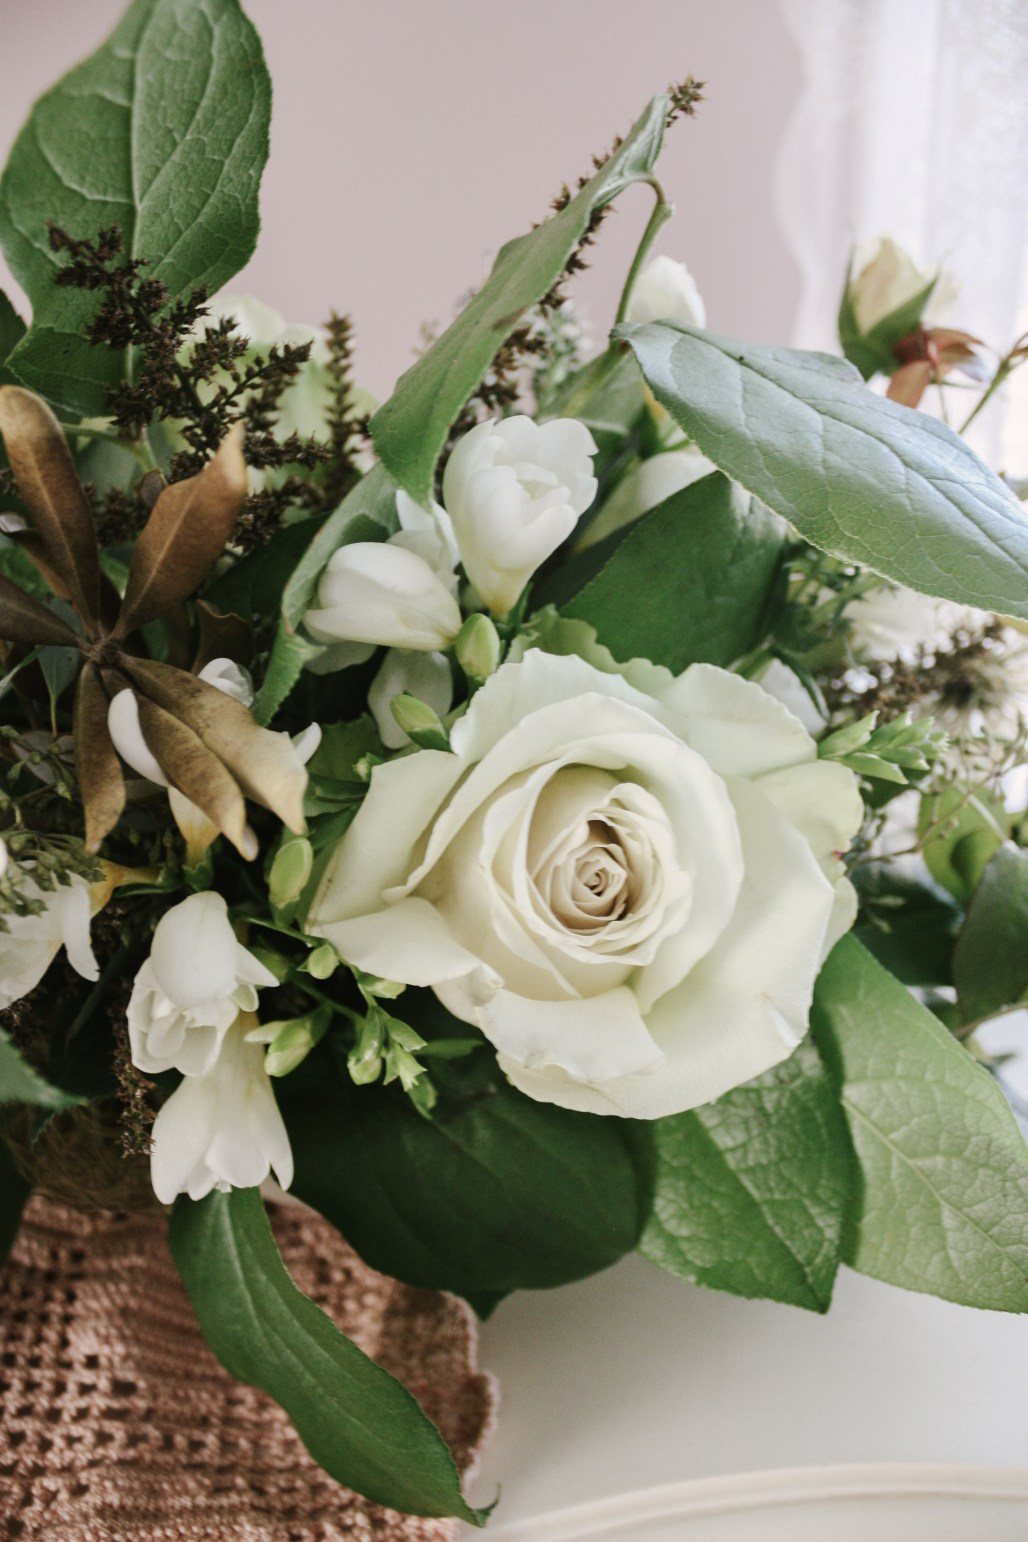 Simple Tricks || Creating Your Own Foraged Autumn Centerpiece with Grocery Store Blooms || Dreamery Events